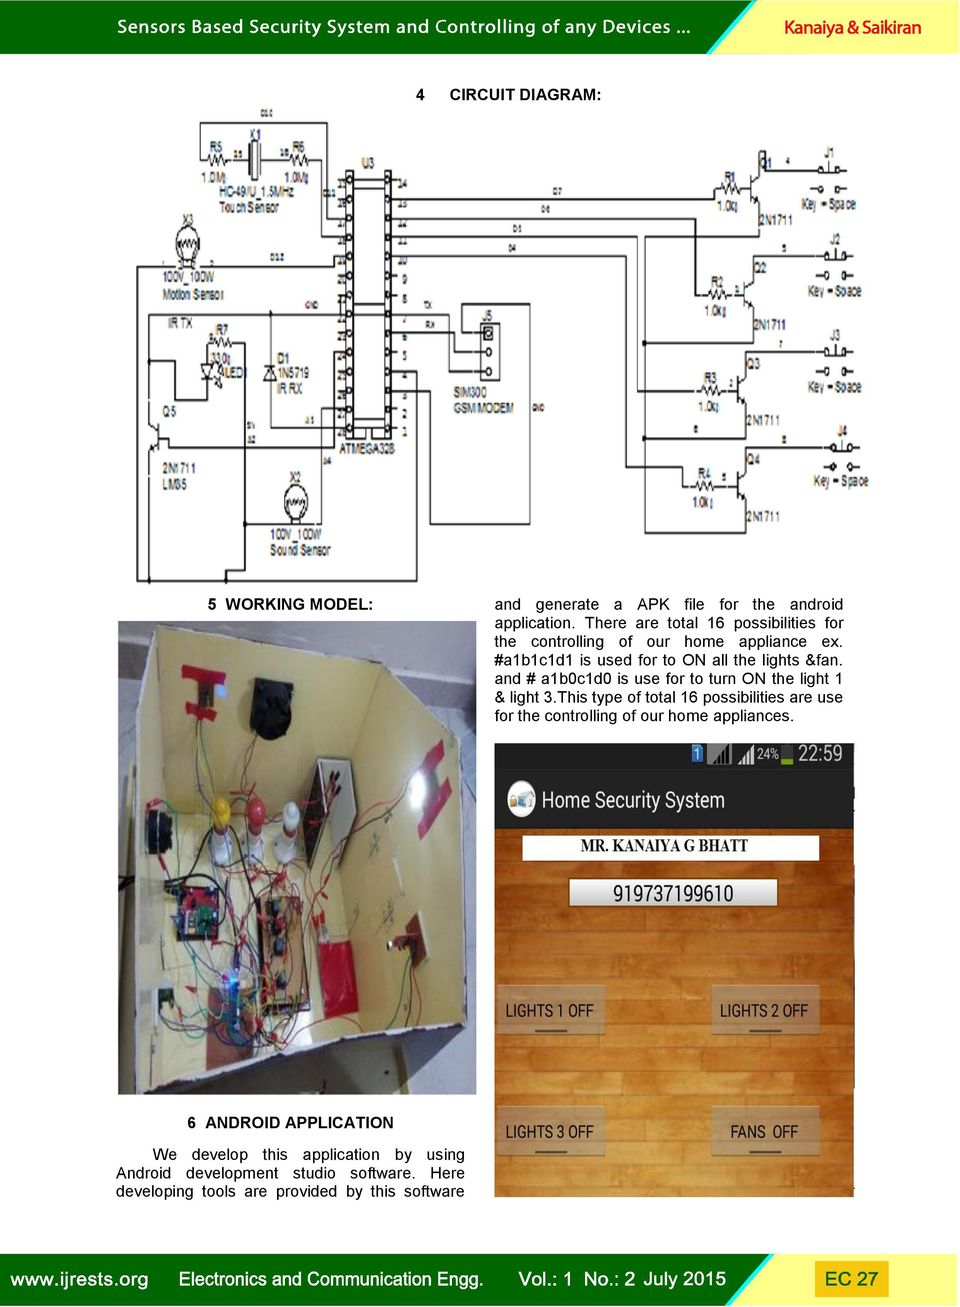 Sensors Based Security System And Controlling Of Any Devices By Bluetoothandroidhomeappliancescontrolcircuit Diagram A1b0c1d0 Is Use For To Turn On The Light 1 3 5 7 Home Appliances Using Android